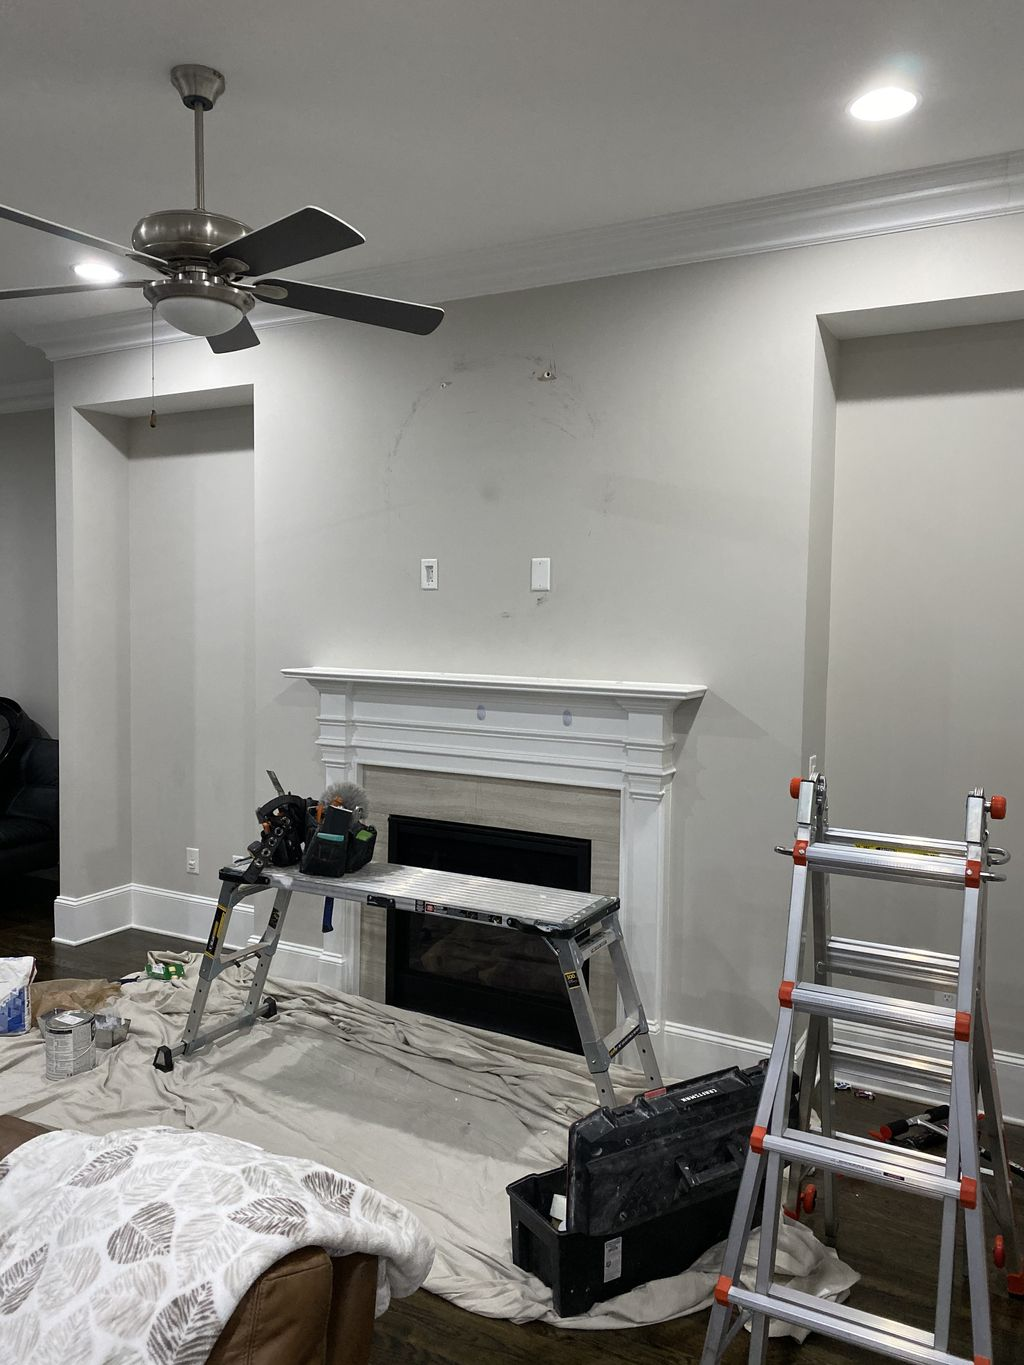 Minor Repair, Touch up, and Fixture Install